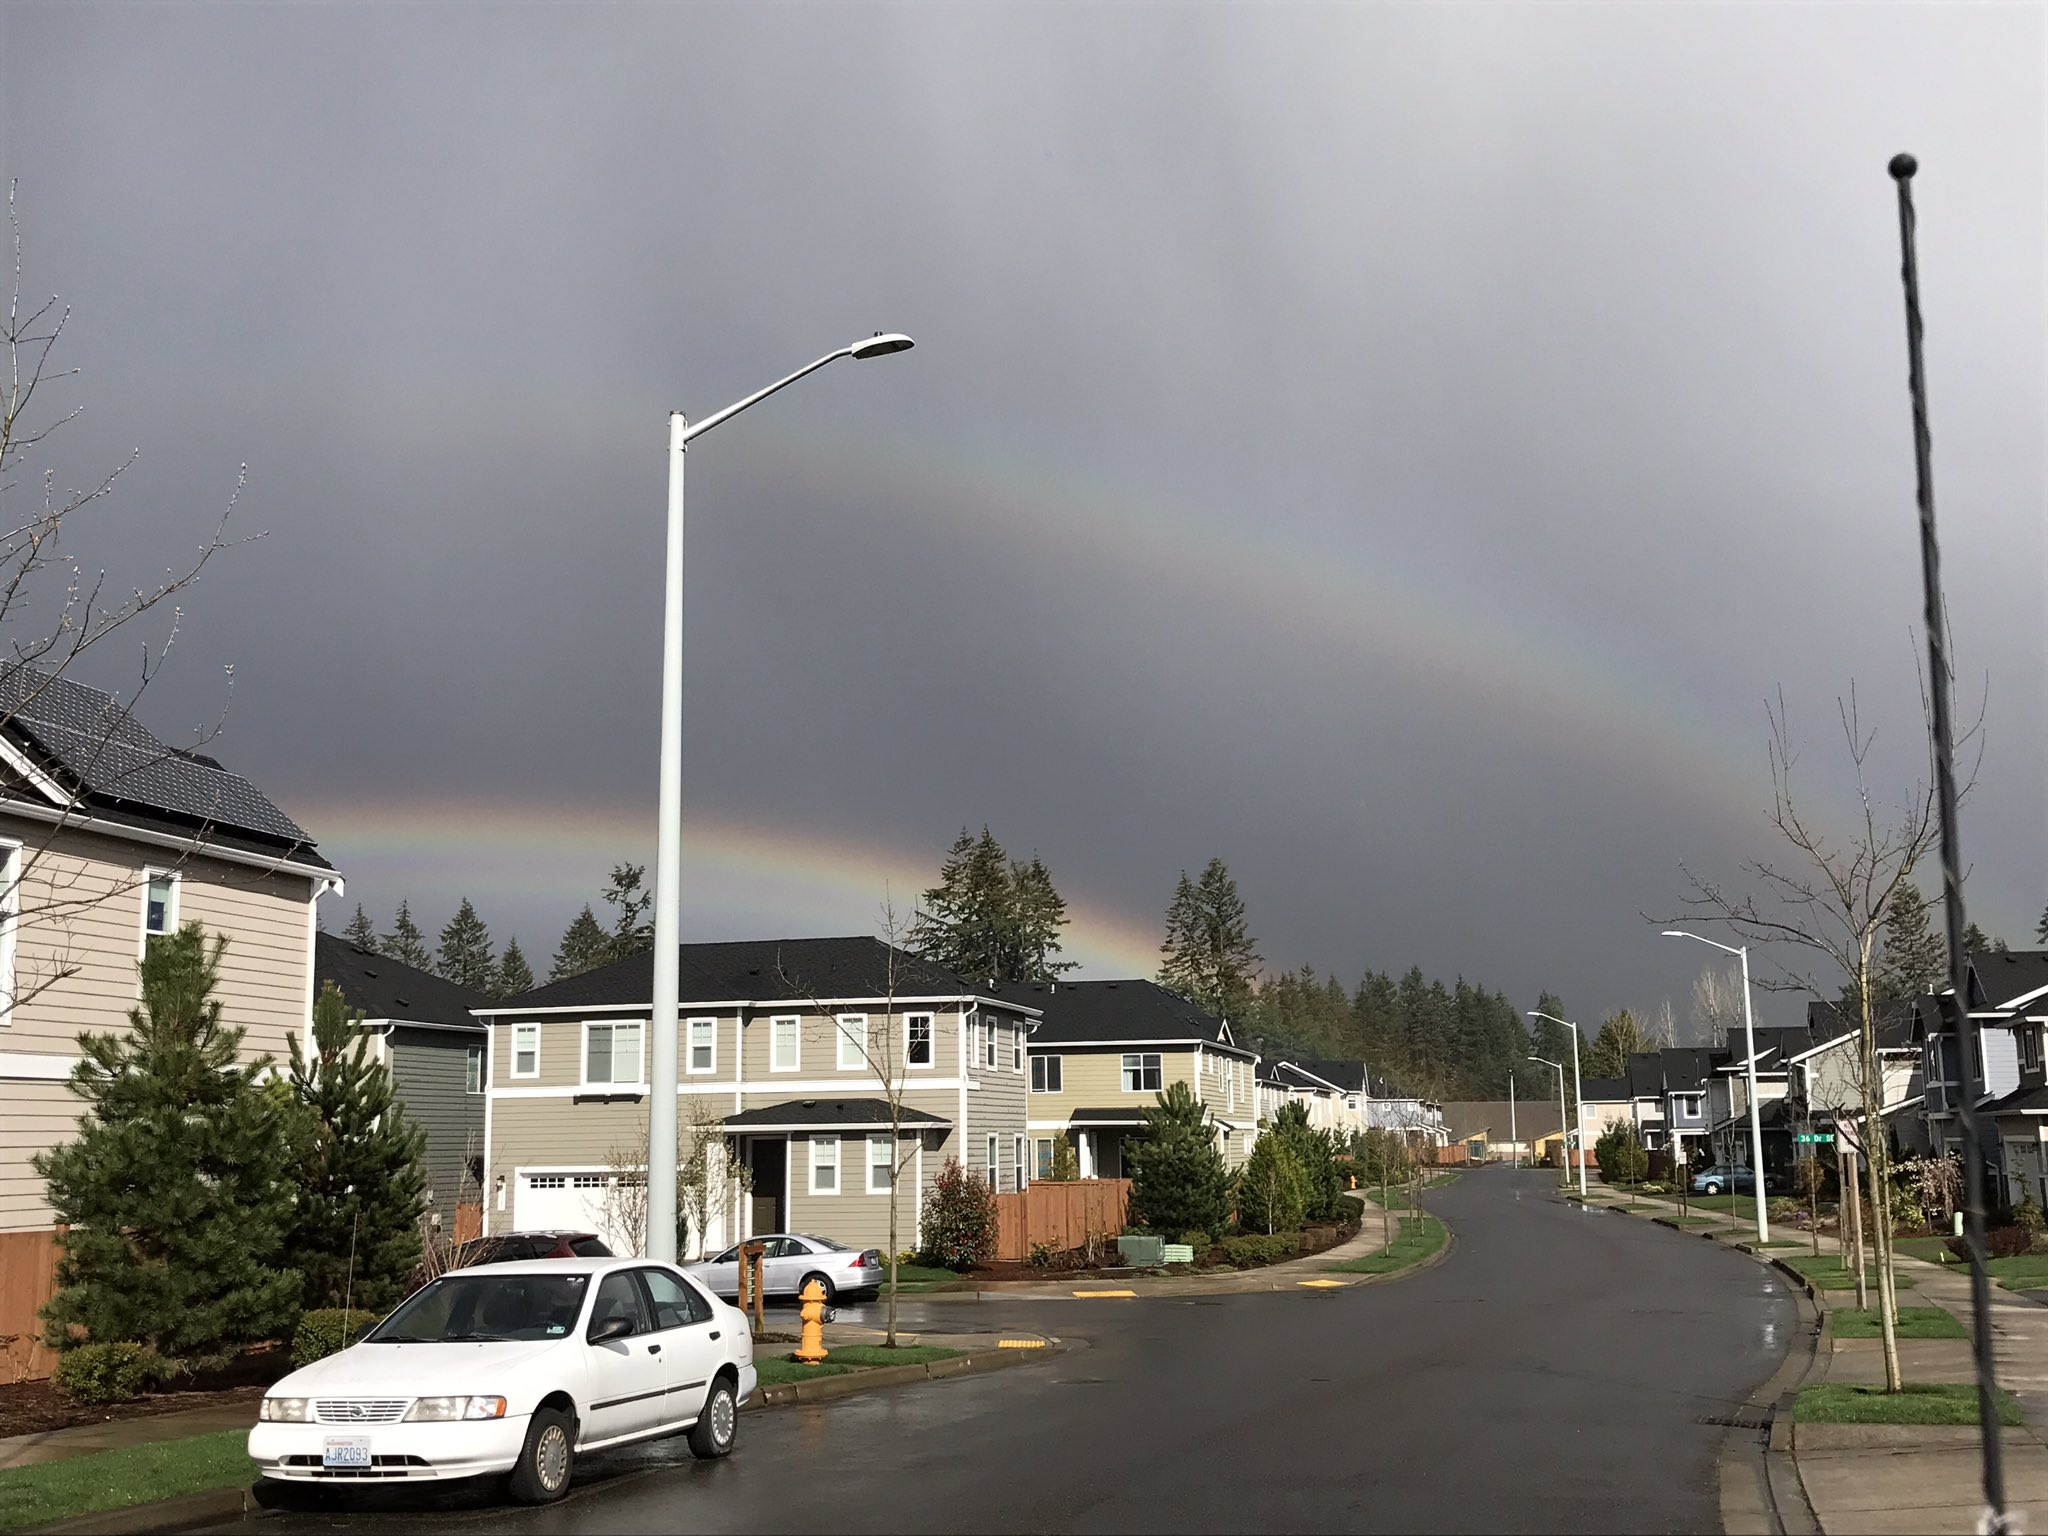 Two rainbows are seen in the sky in Mill Creek, Wash. Monday, April 10, 2017. (Photo: Shaelynn Hade Horton)